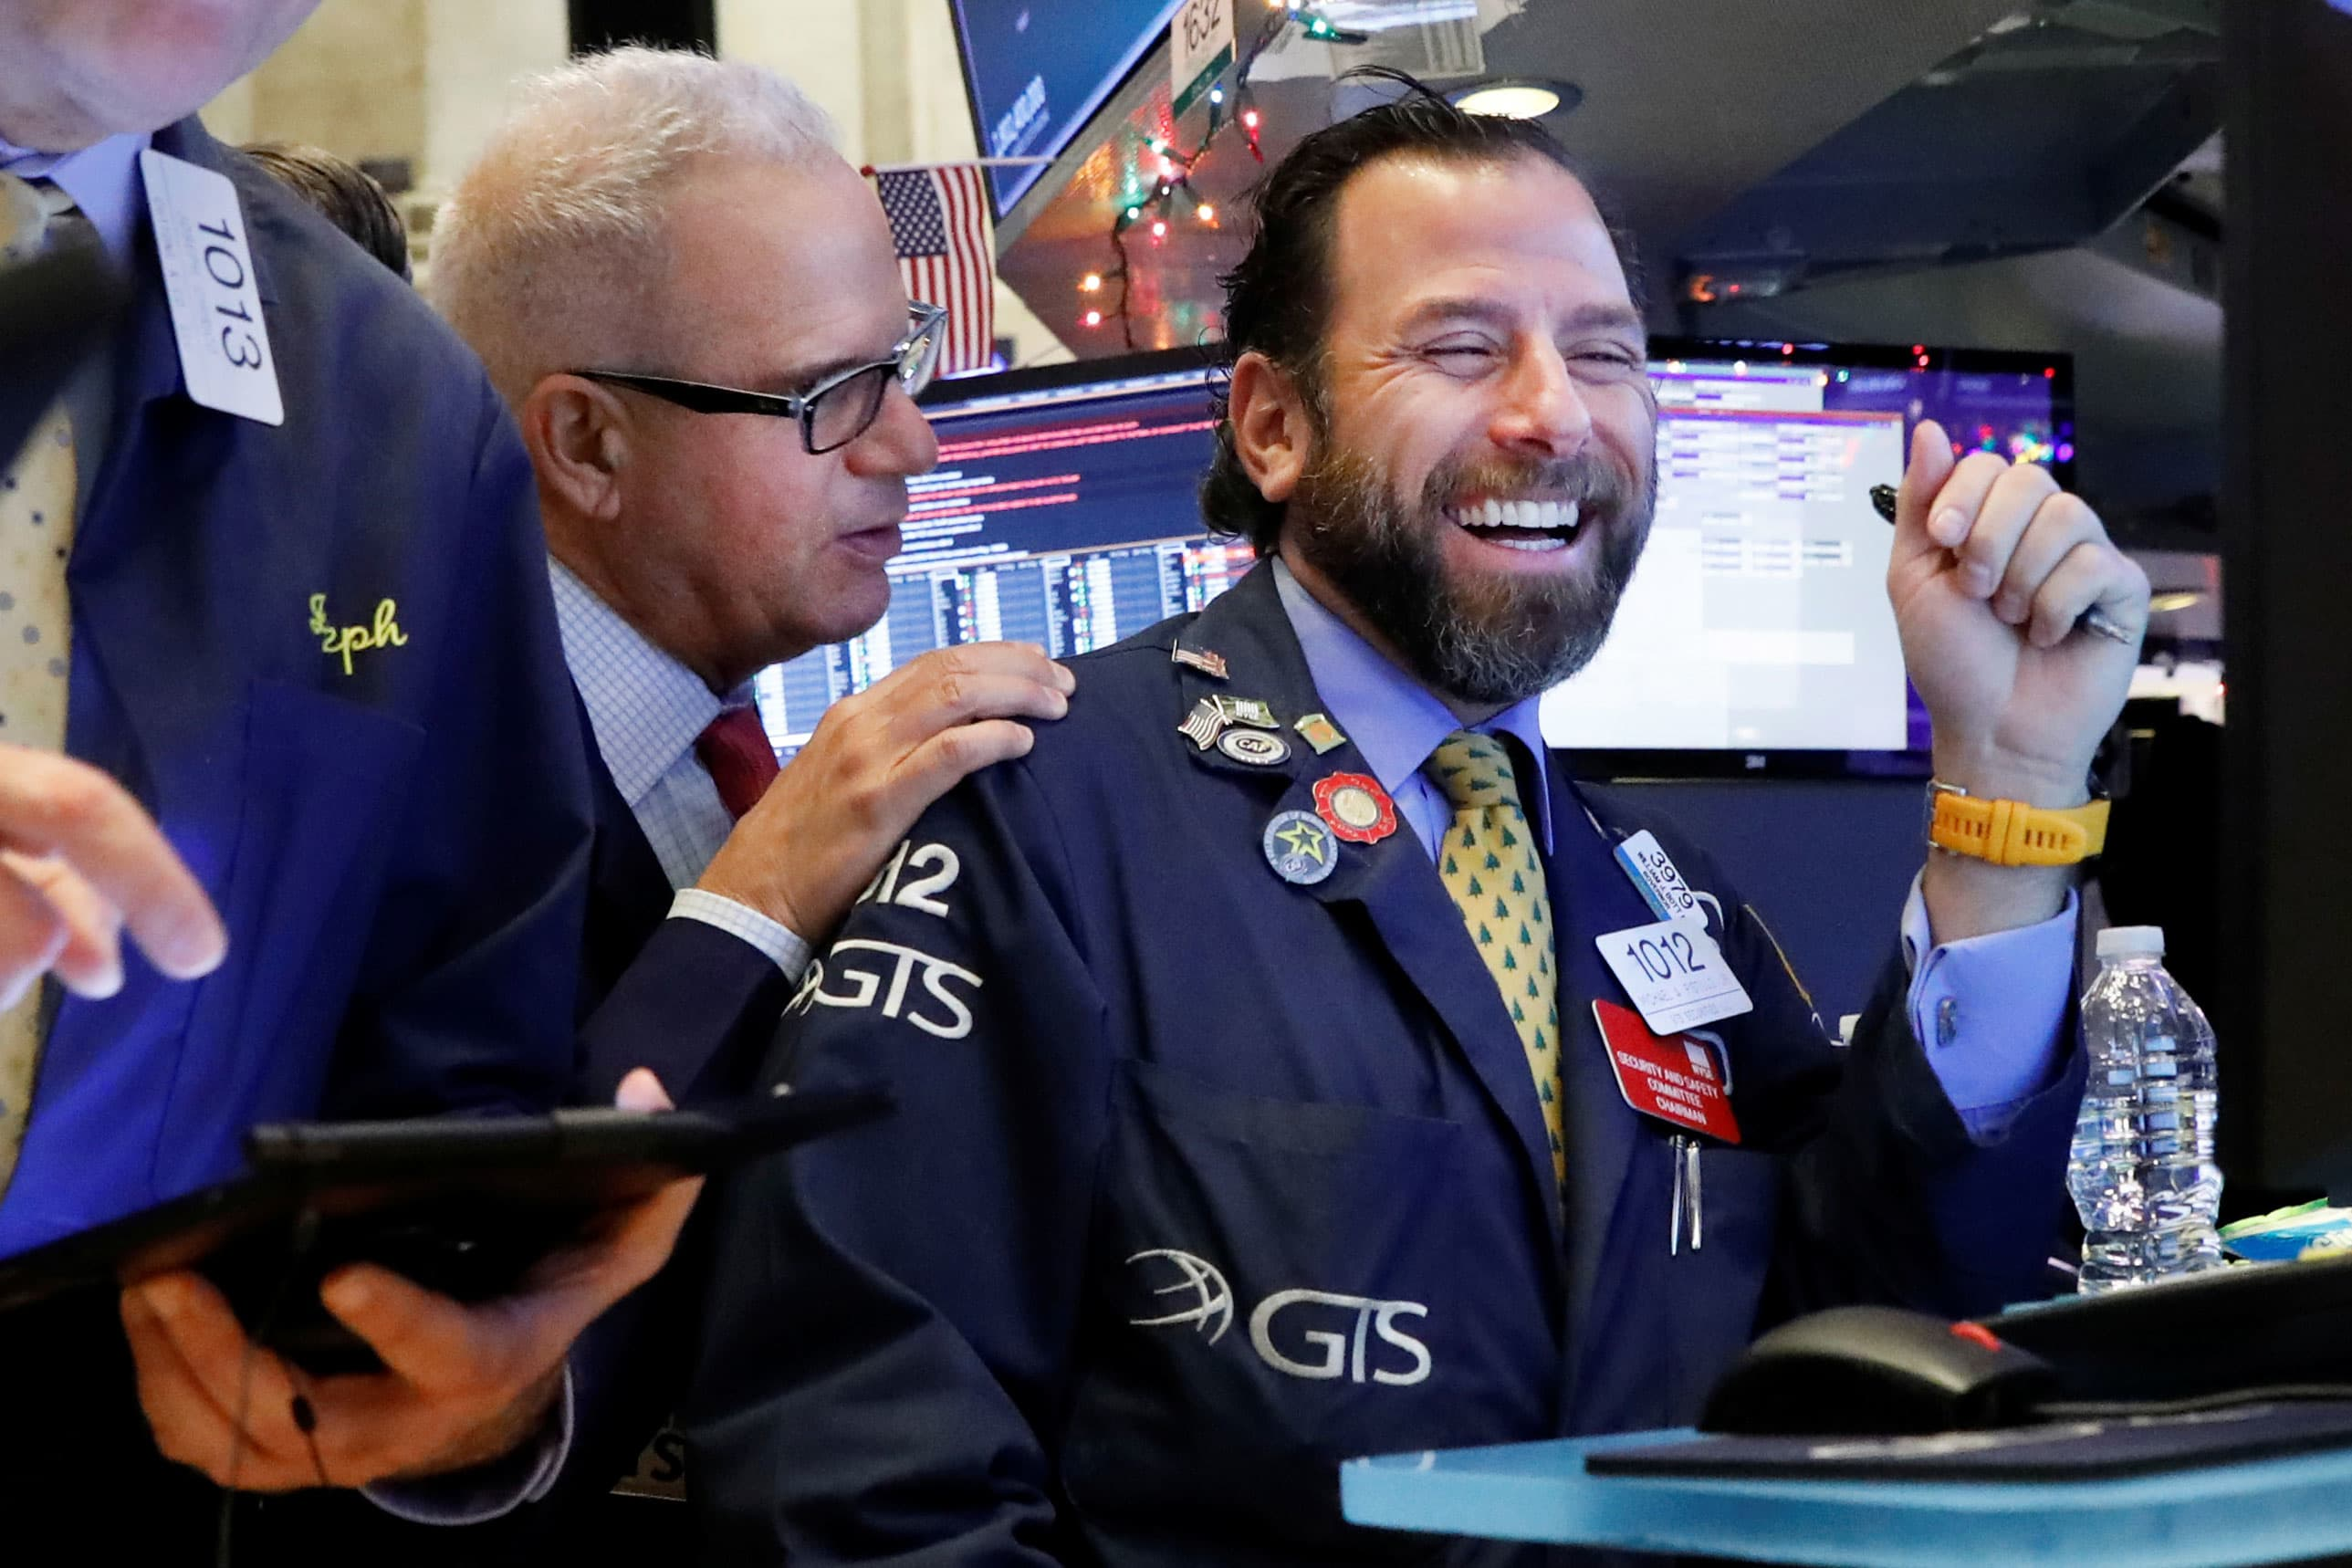 Stock market live updates: Dow up 900, Nasdaq rises more than 3.5%, bottom in? - CNBC 3